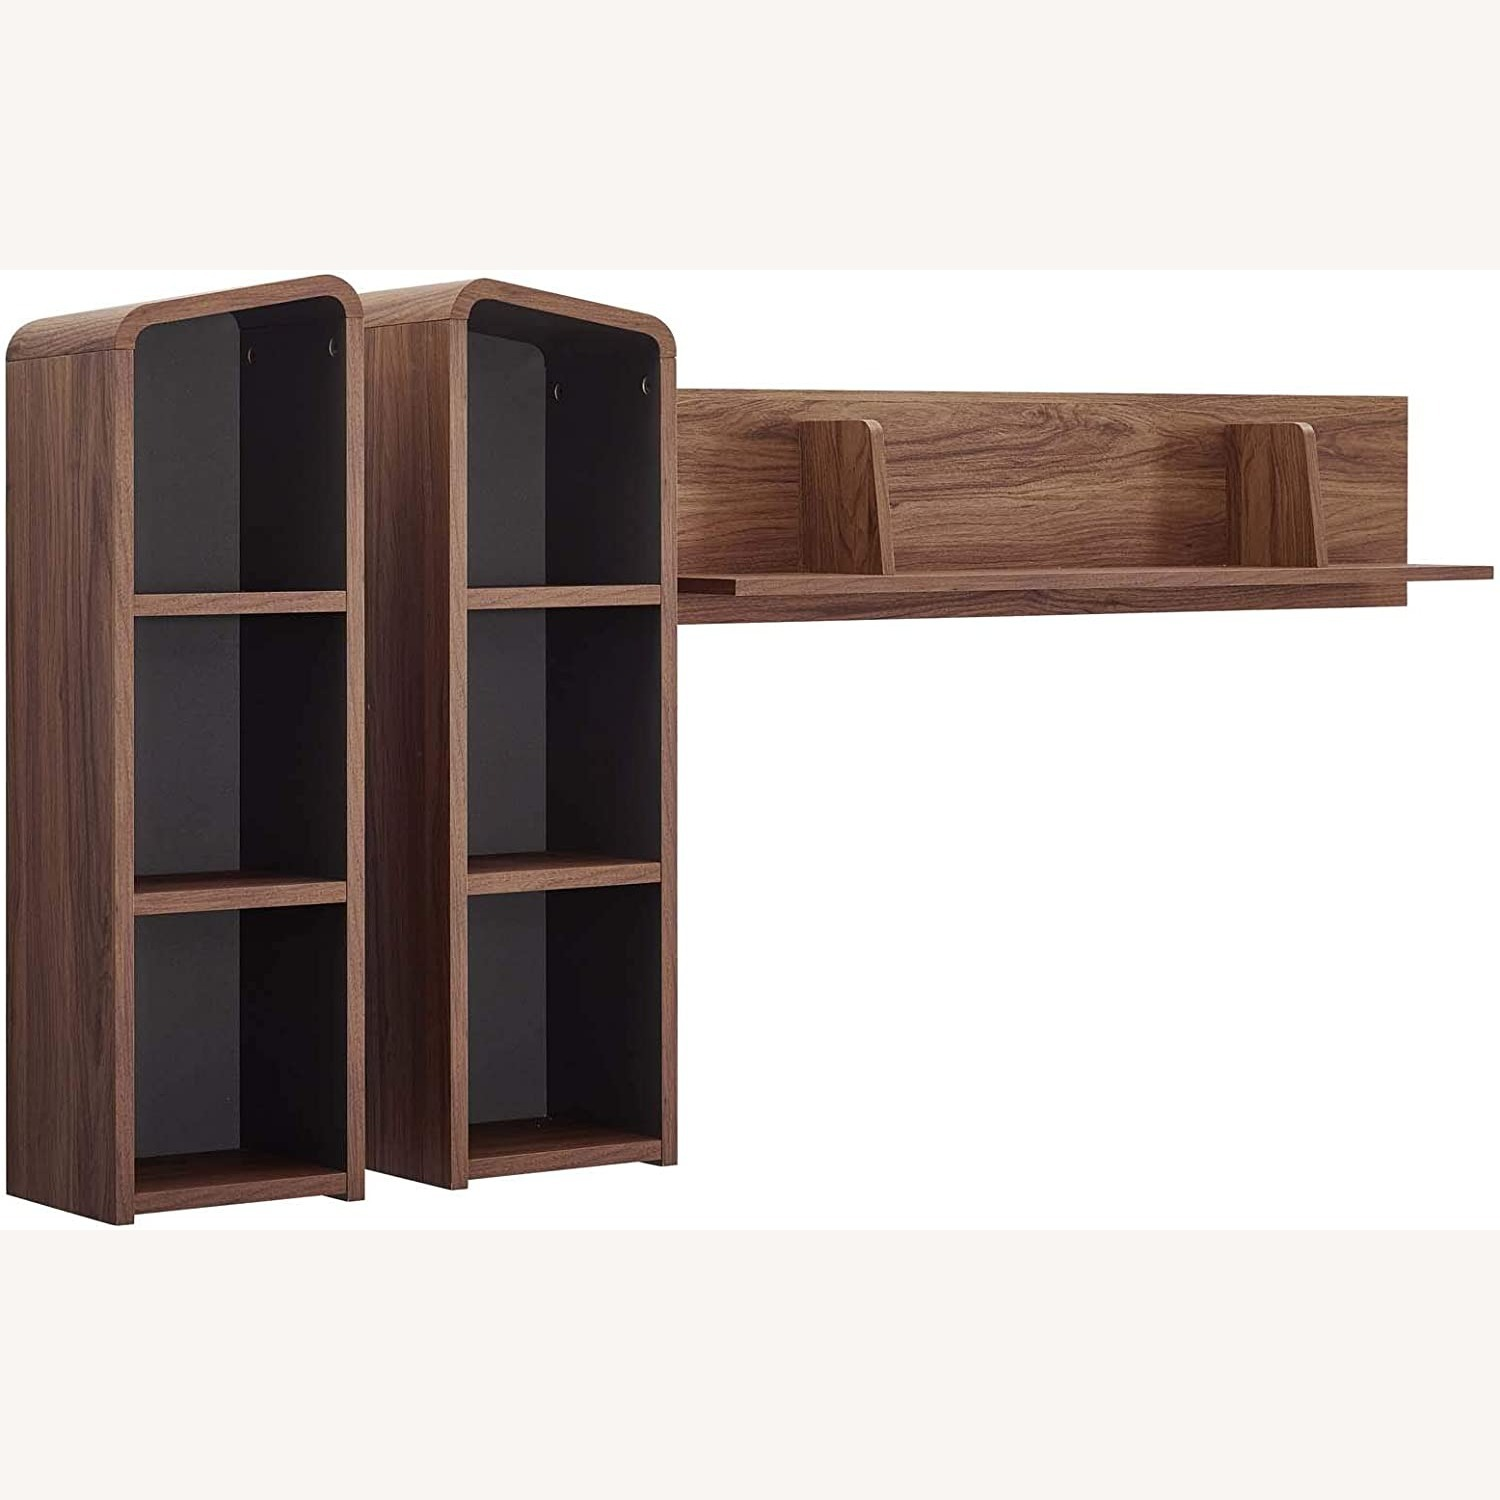 Wall Mounted Shelves In Walnut W/ Rounded Edges - image-0